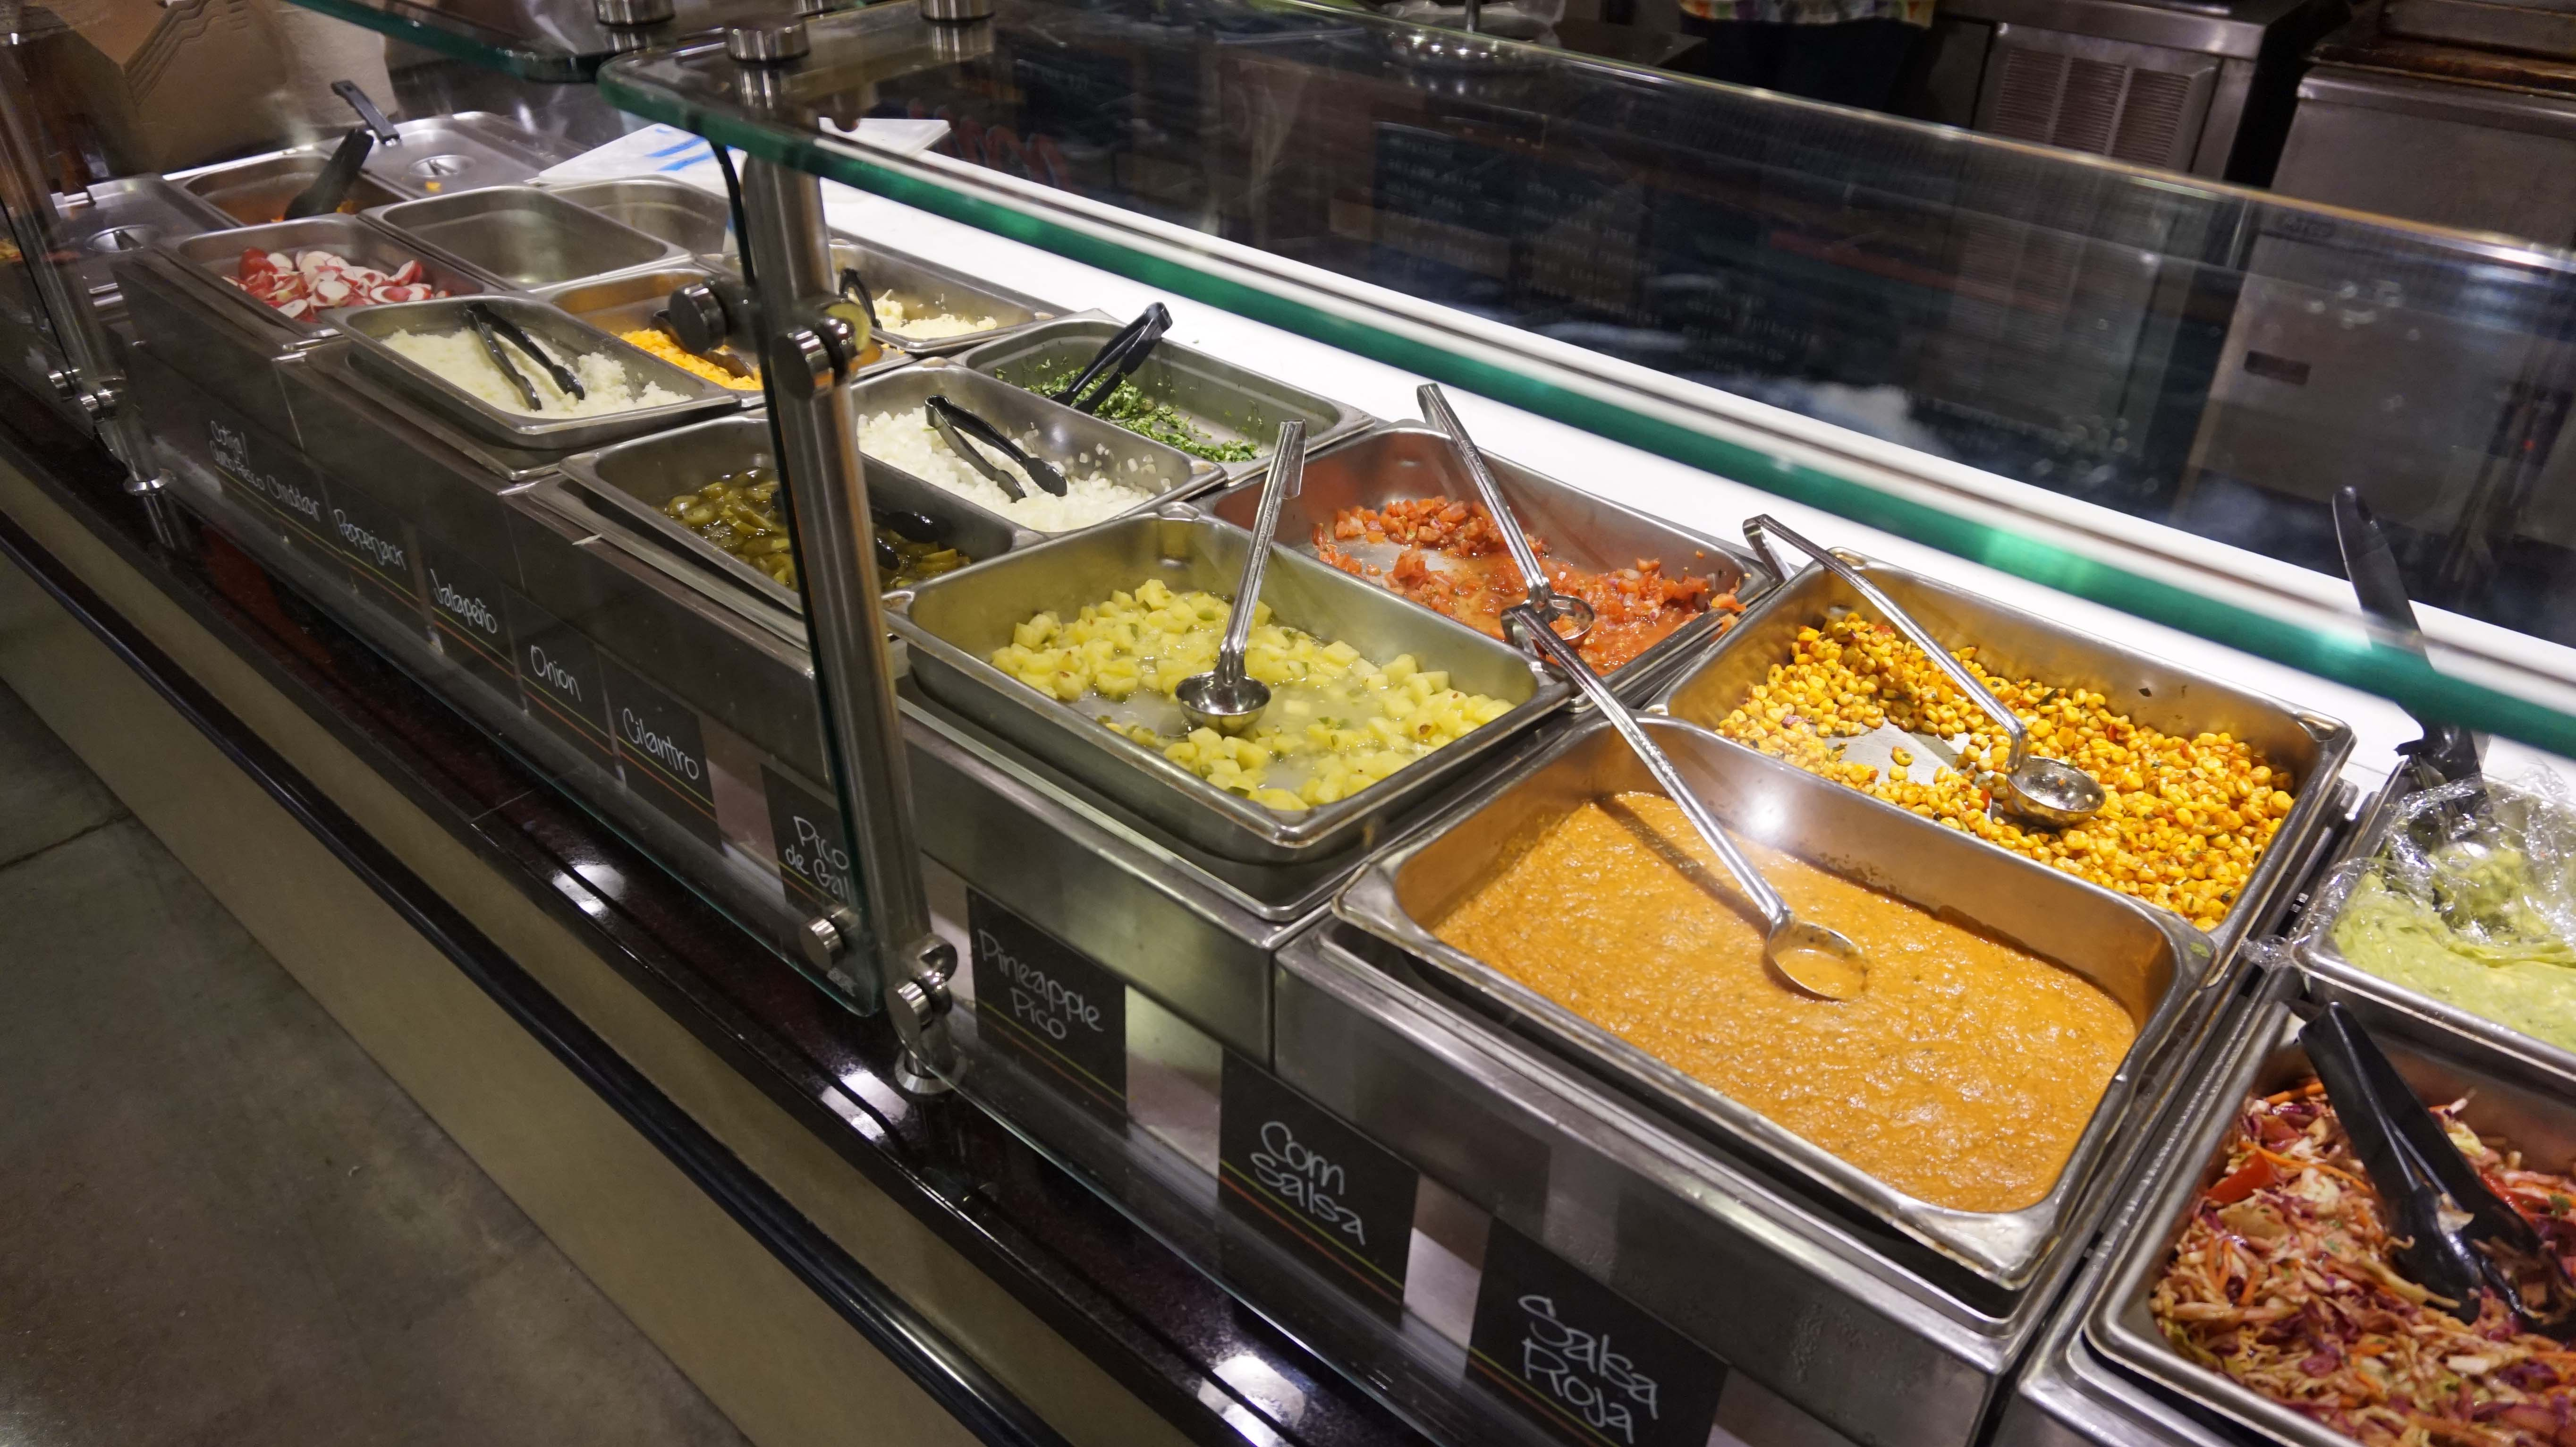 Review whole foods taco bar is just gross batterypark for Food bar whole foods